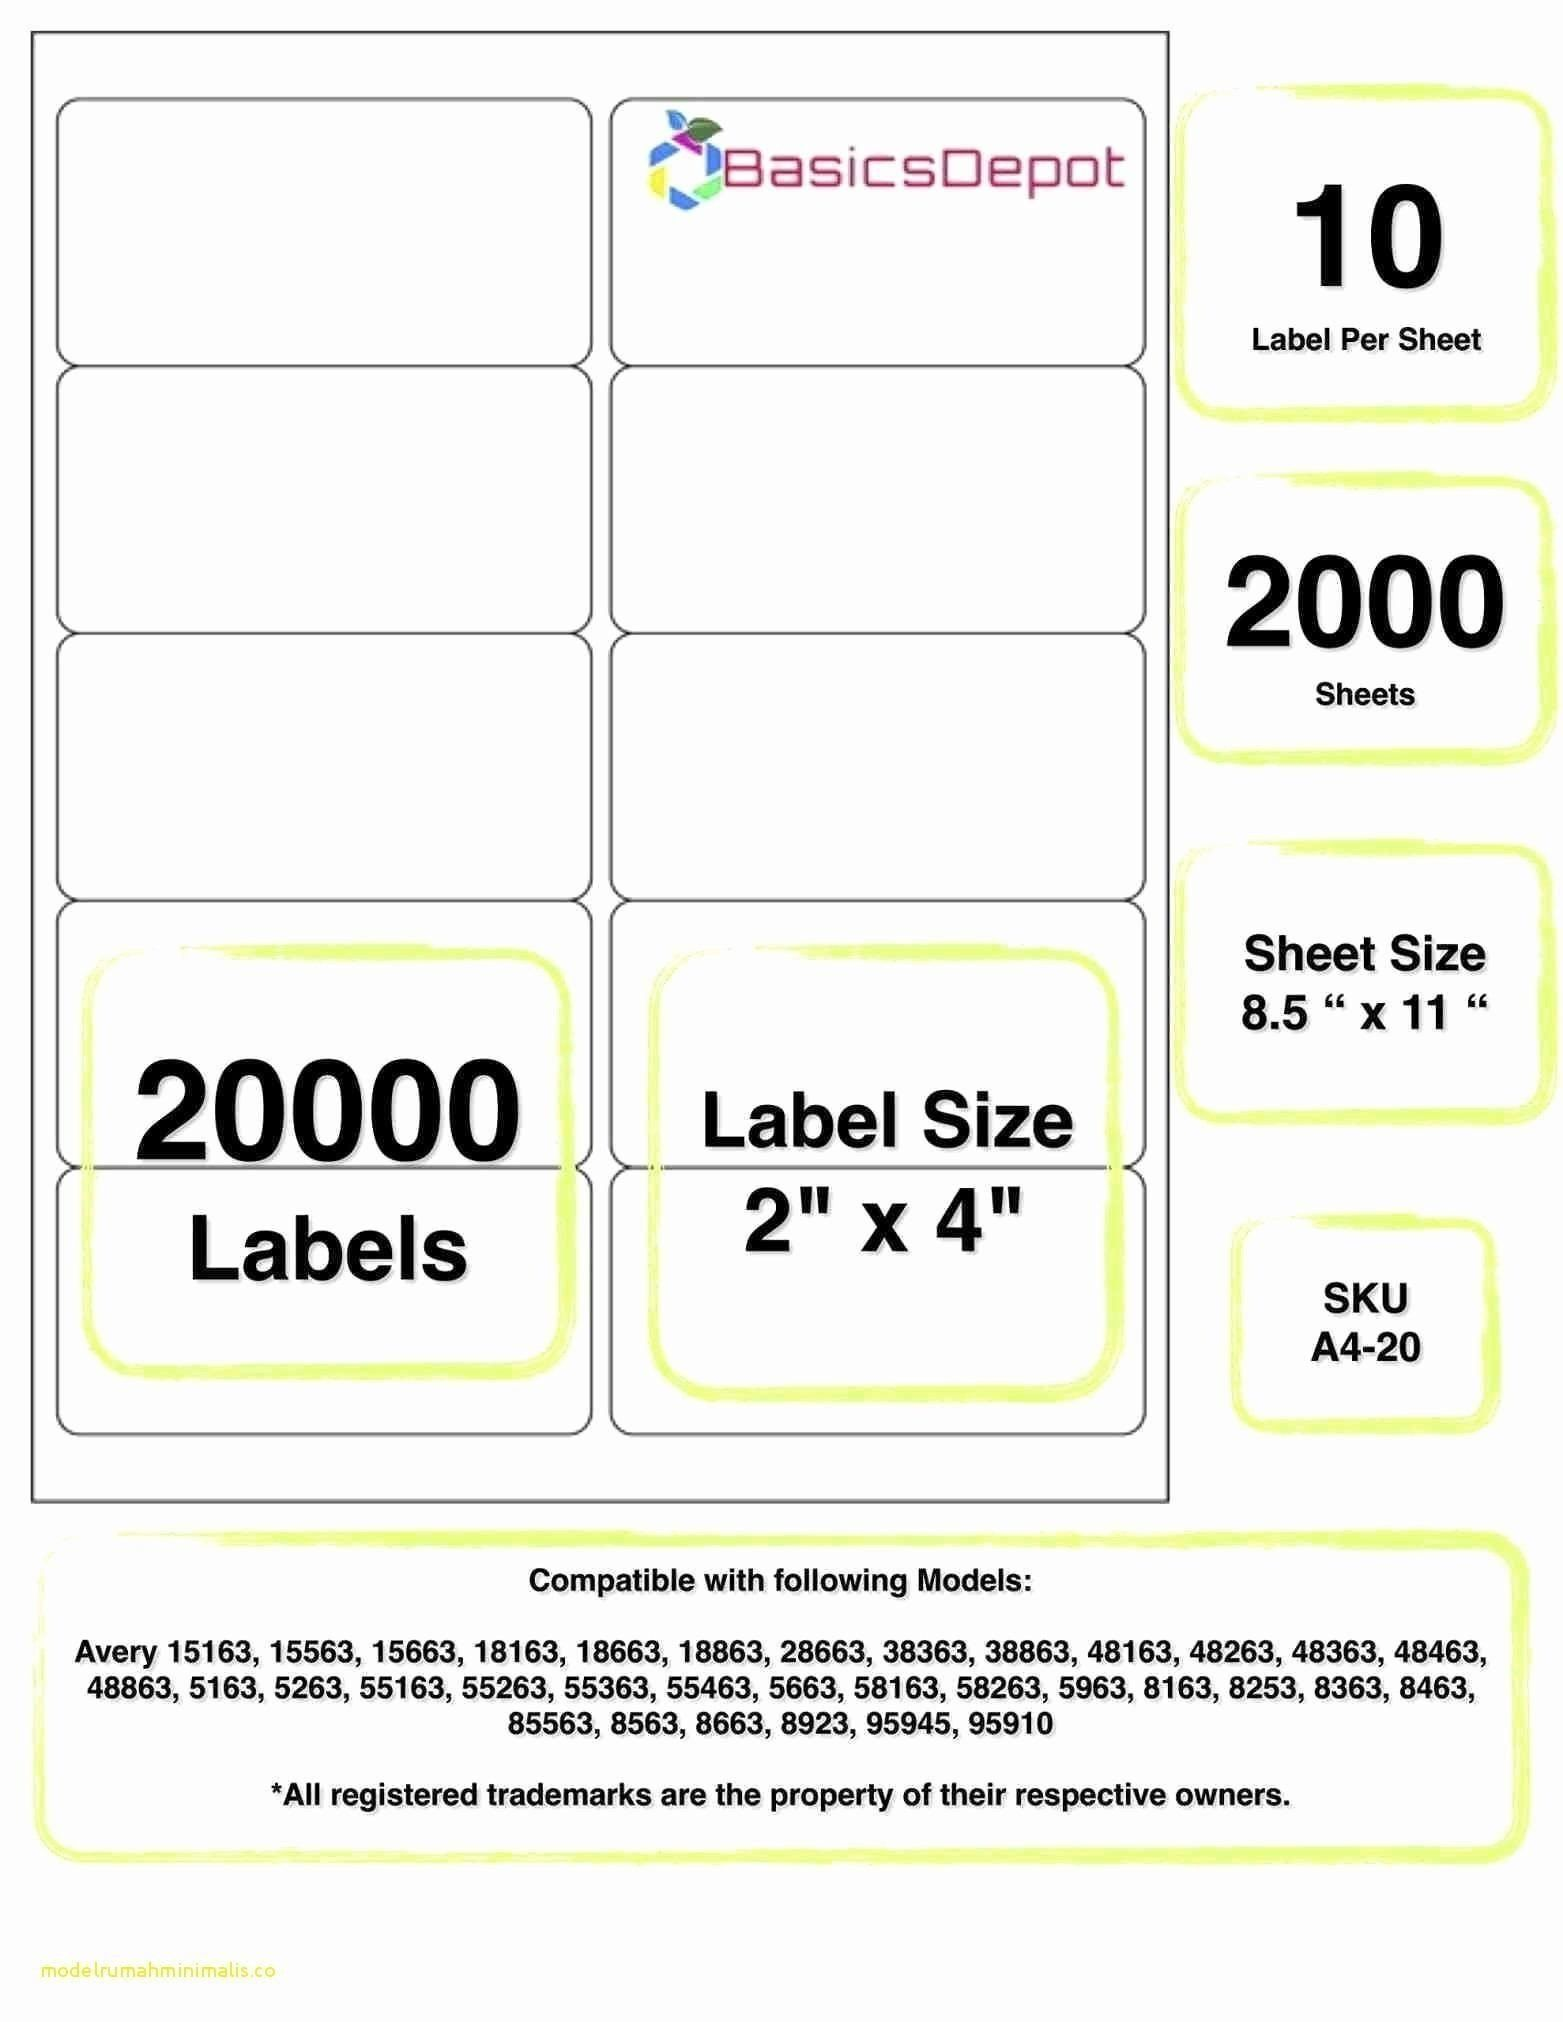 Avery Labels 18160 Template New Download Avery Label Template Label Templates Avery Label Templates Printable Label Templates